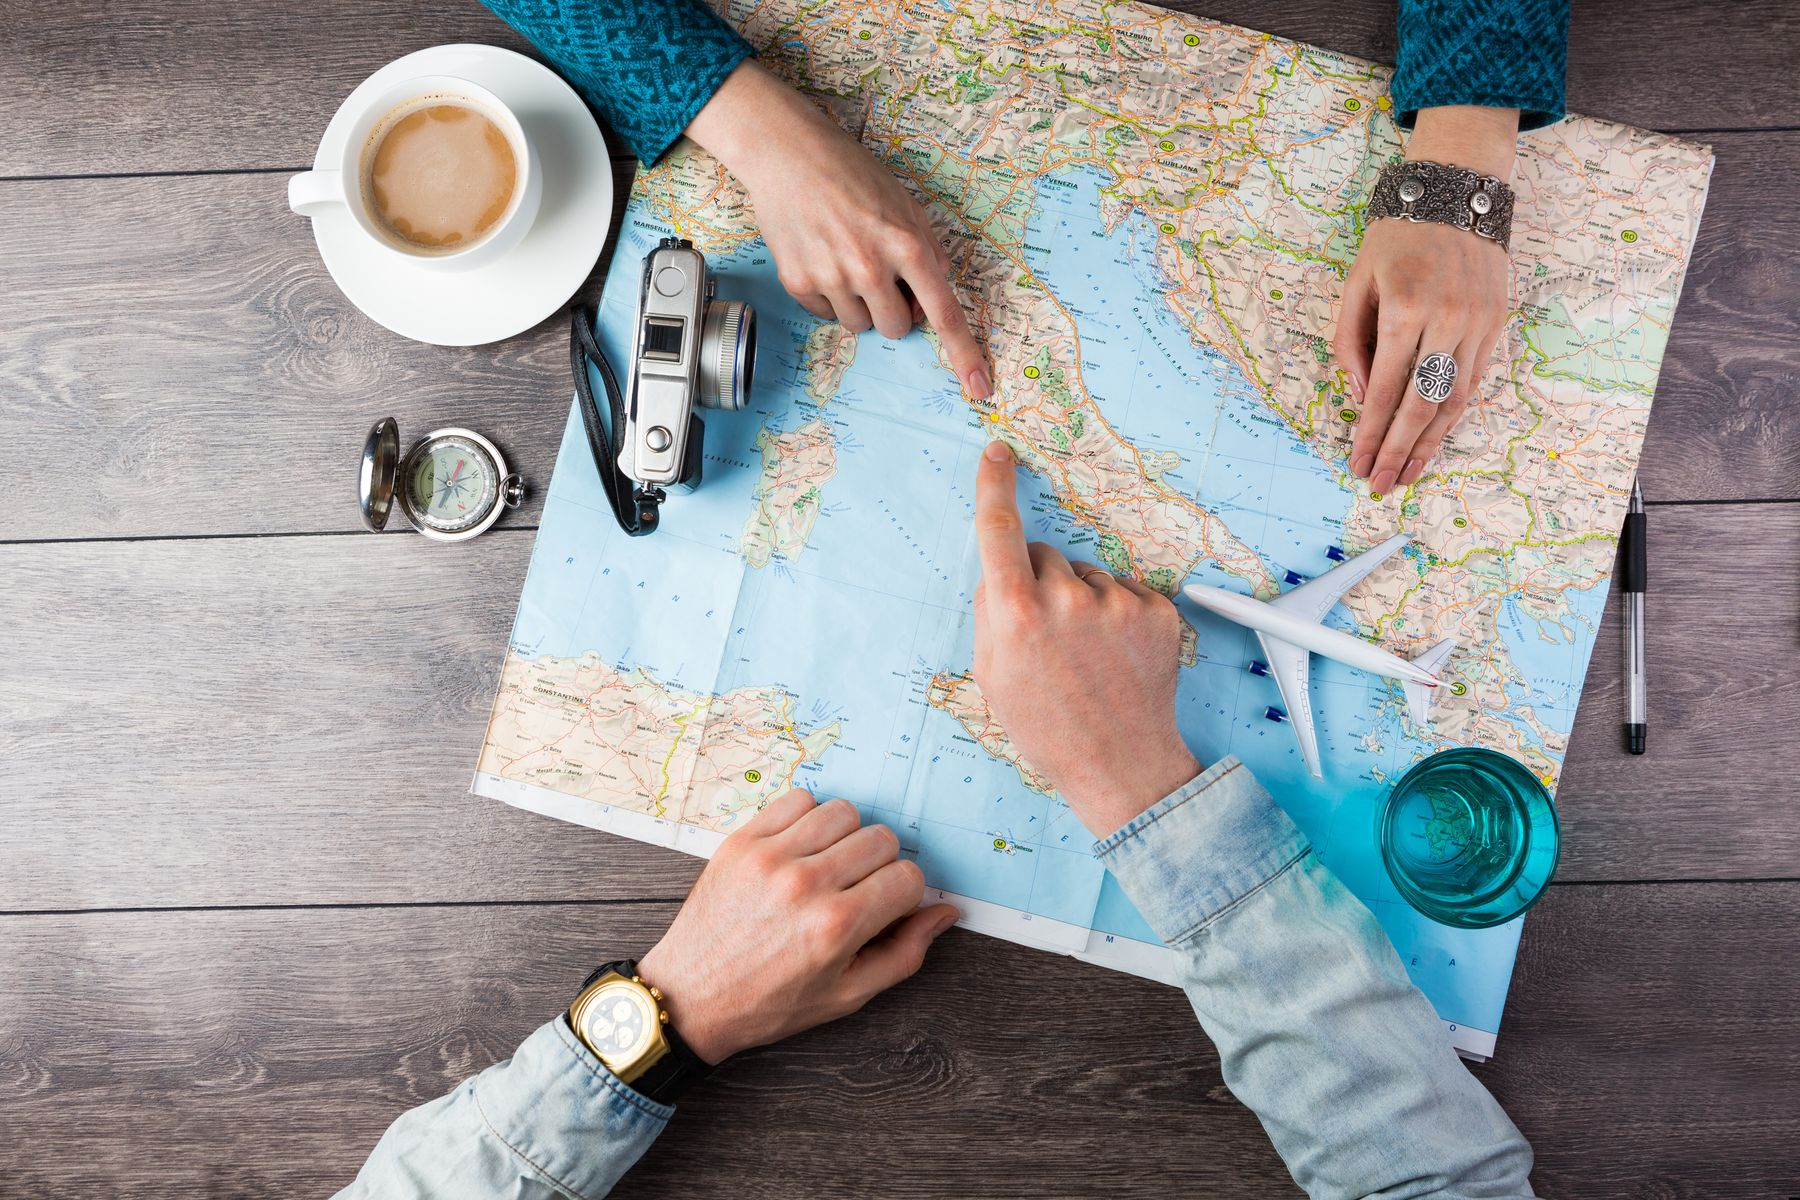 The hands of a woman and man point at a map of multi city flight plan. There is a camera, a coffee cup and a compass.